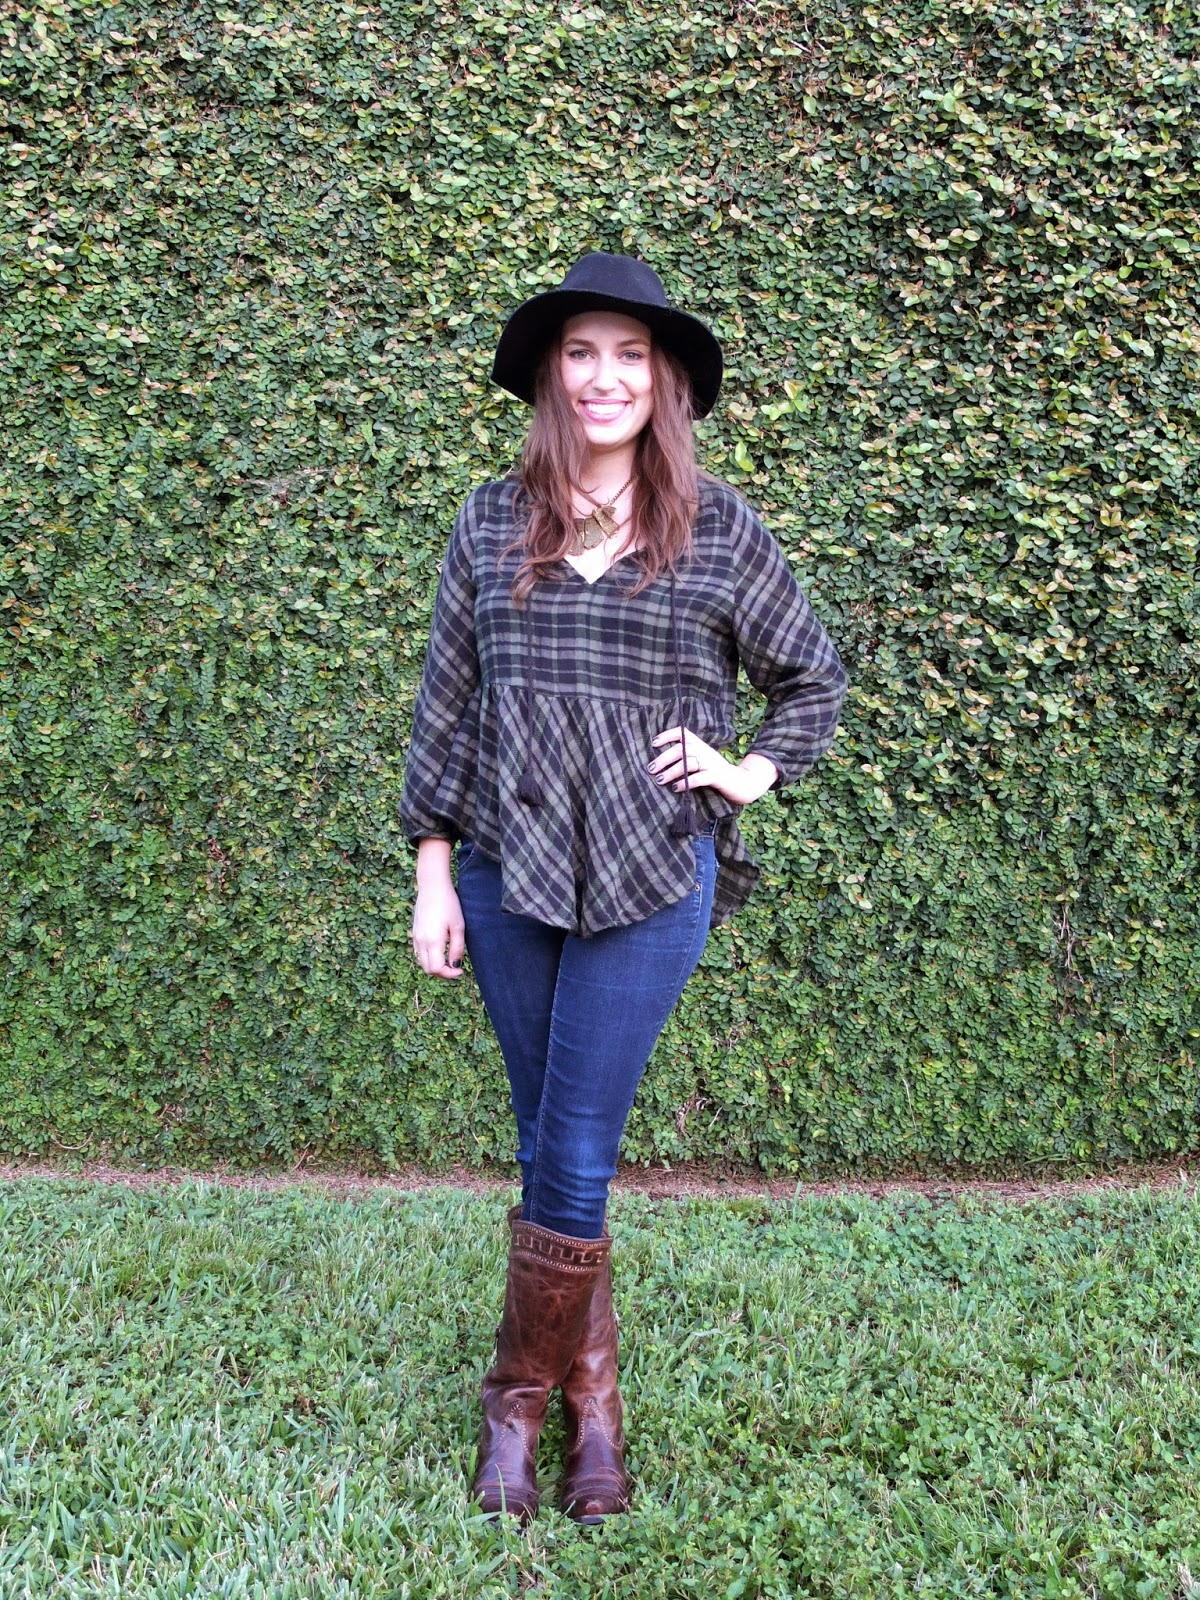 Anthropologie Plaid Peasant Top, Anthropologie Green Top, Anthropologie Green Plaid Top, Trendy in Texas, Fall Fashion, Trendy in Texas Fall Style, Black Floppy Felt Hat, Black Floppy Hat, Ariat Boots, Western Boots, Cavender's, Ariat Cavander's Boots, Houston Cowboy Boots, Ariat Sahara Boots